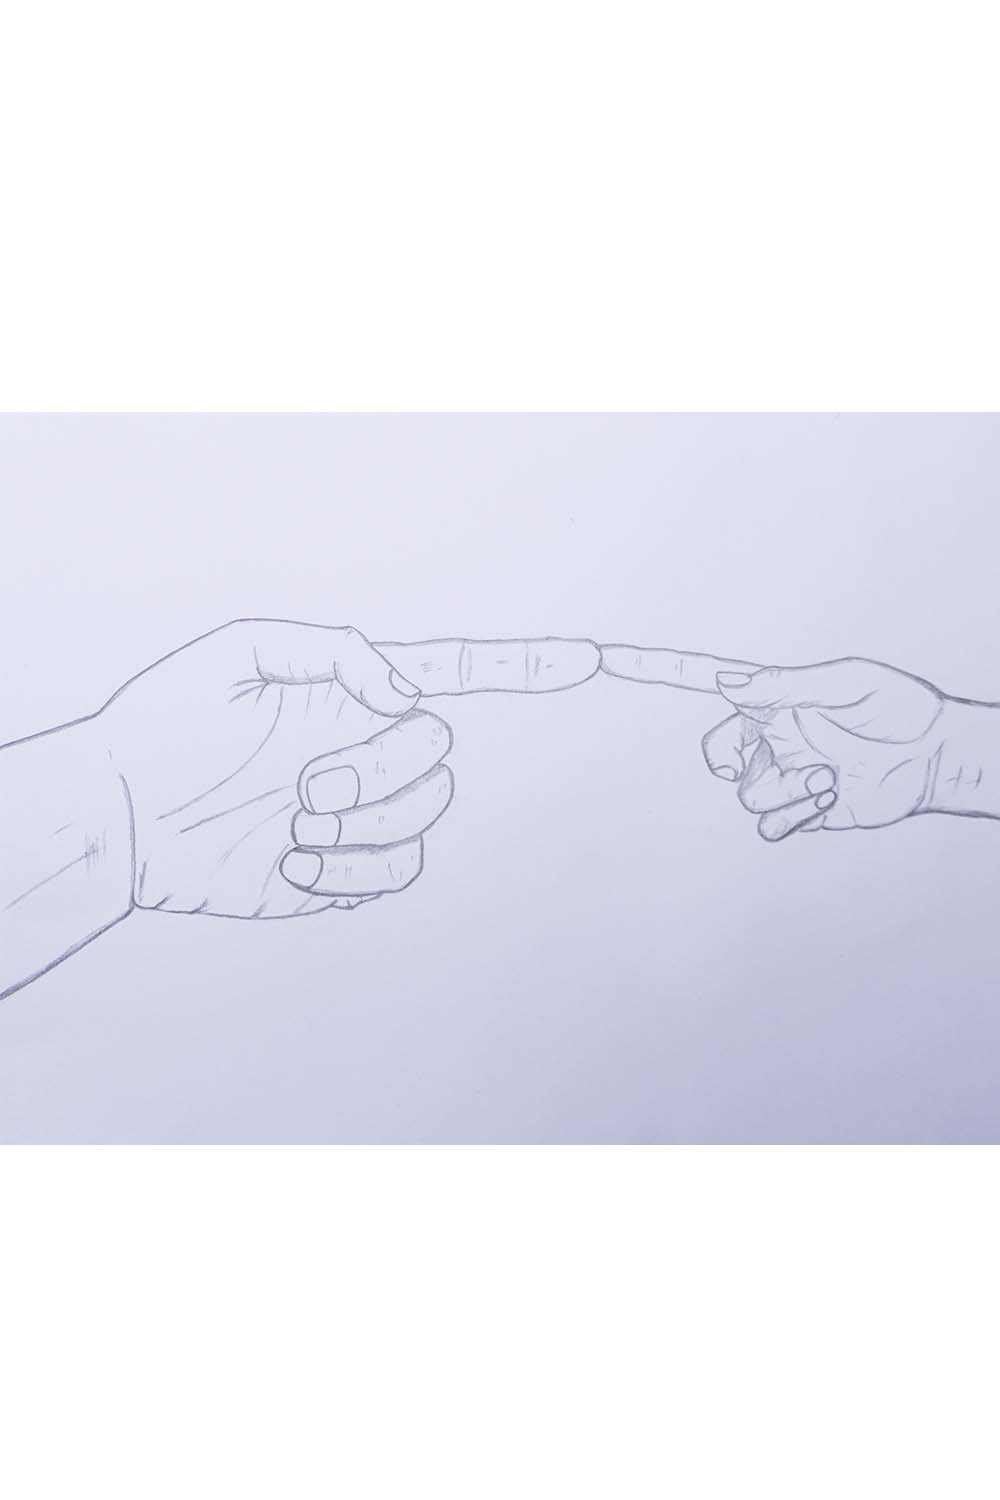 hands touching hands drawing For beginners